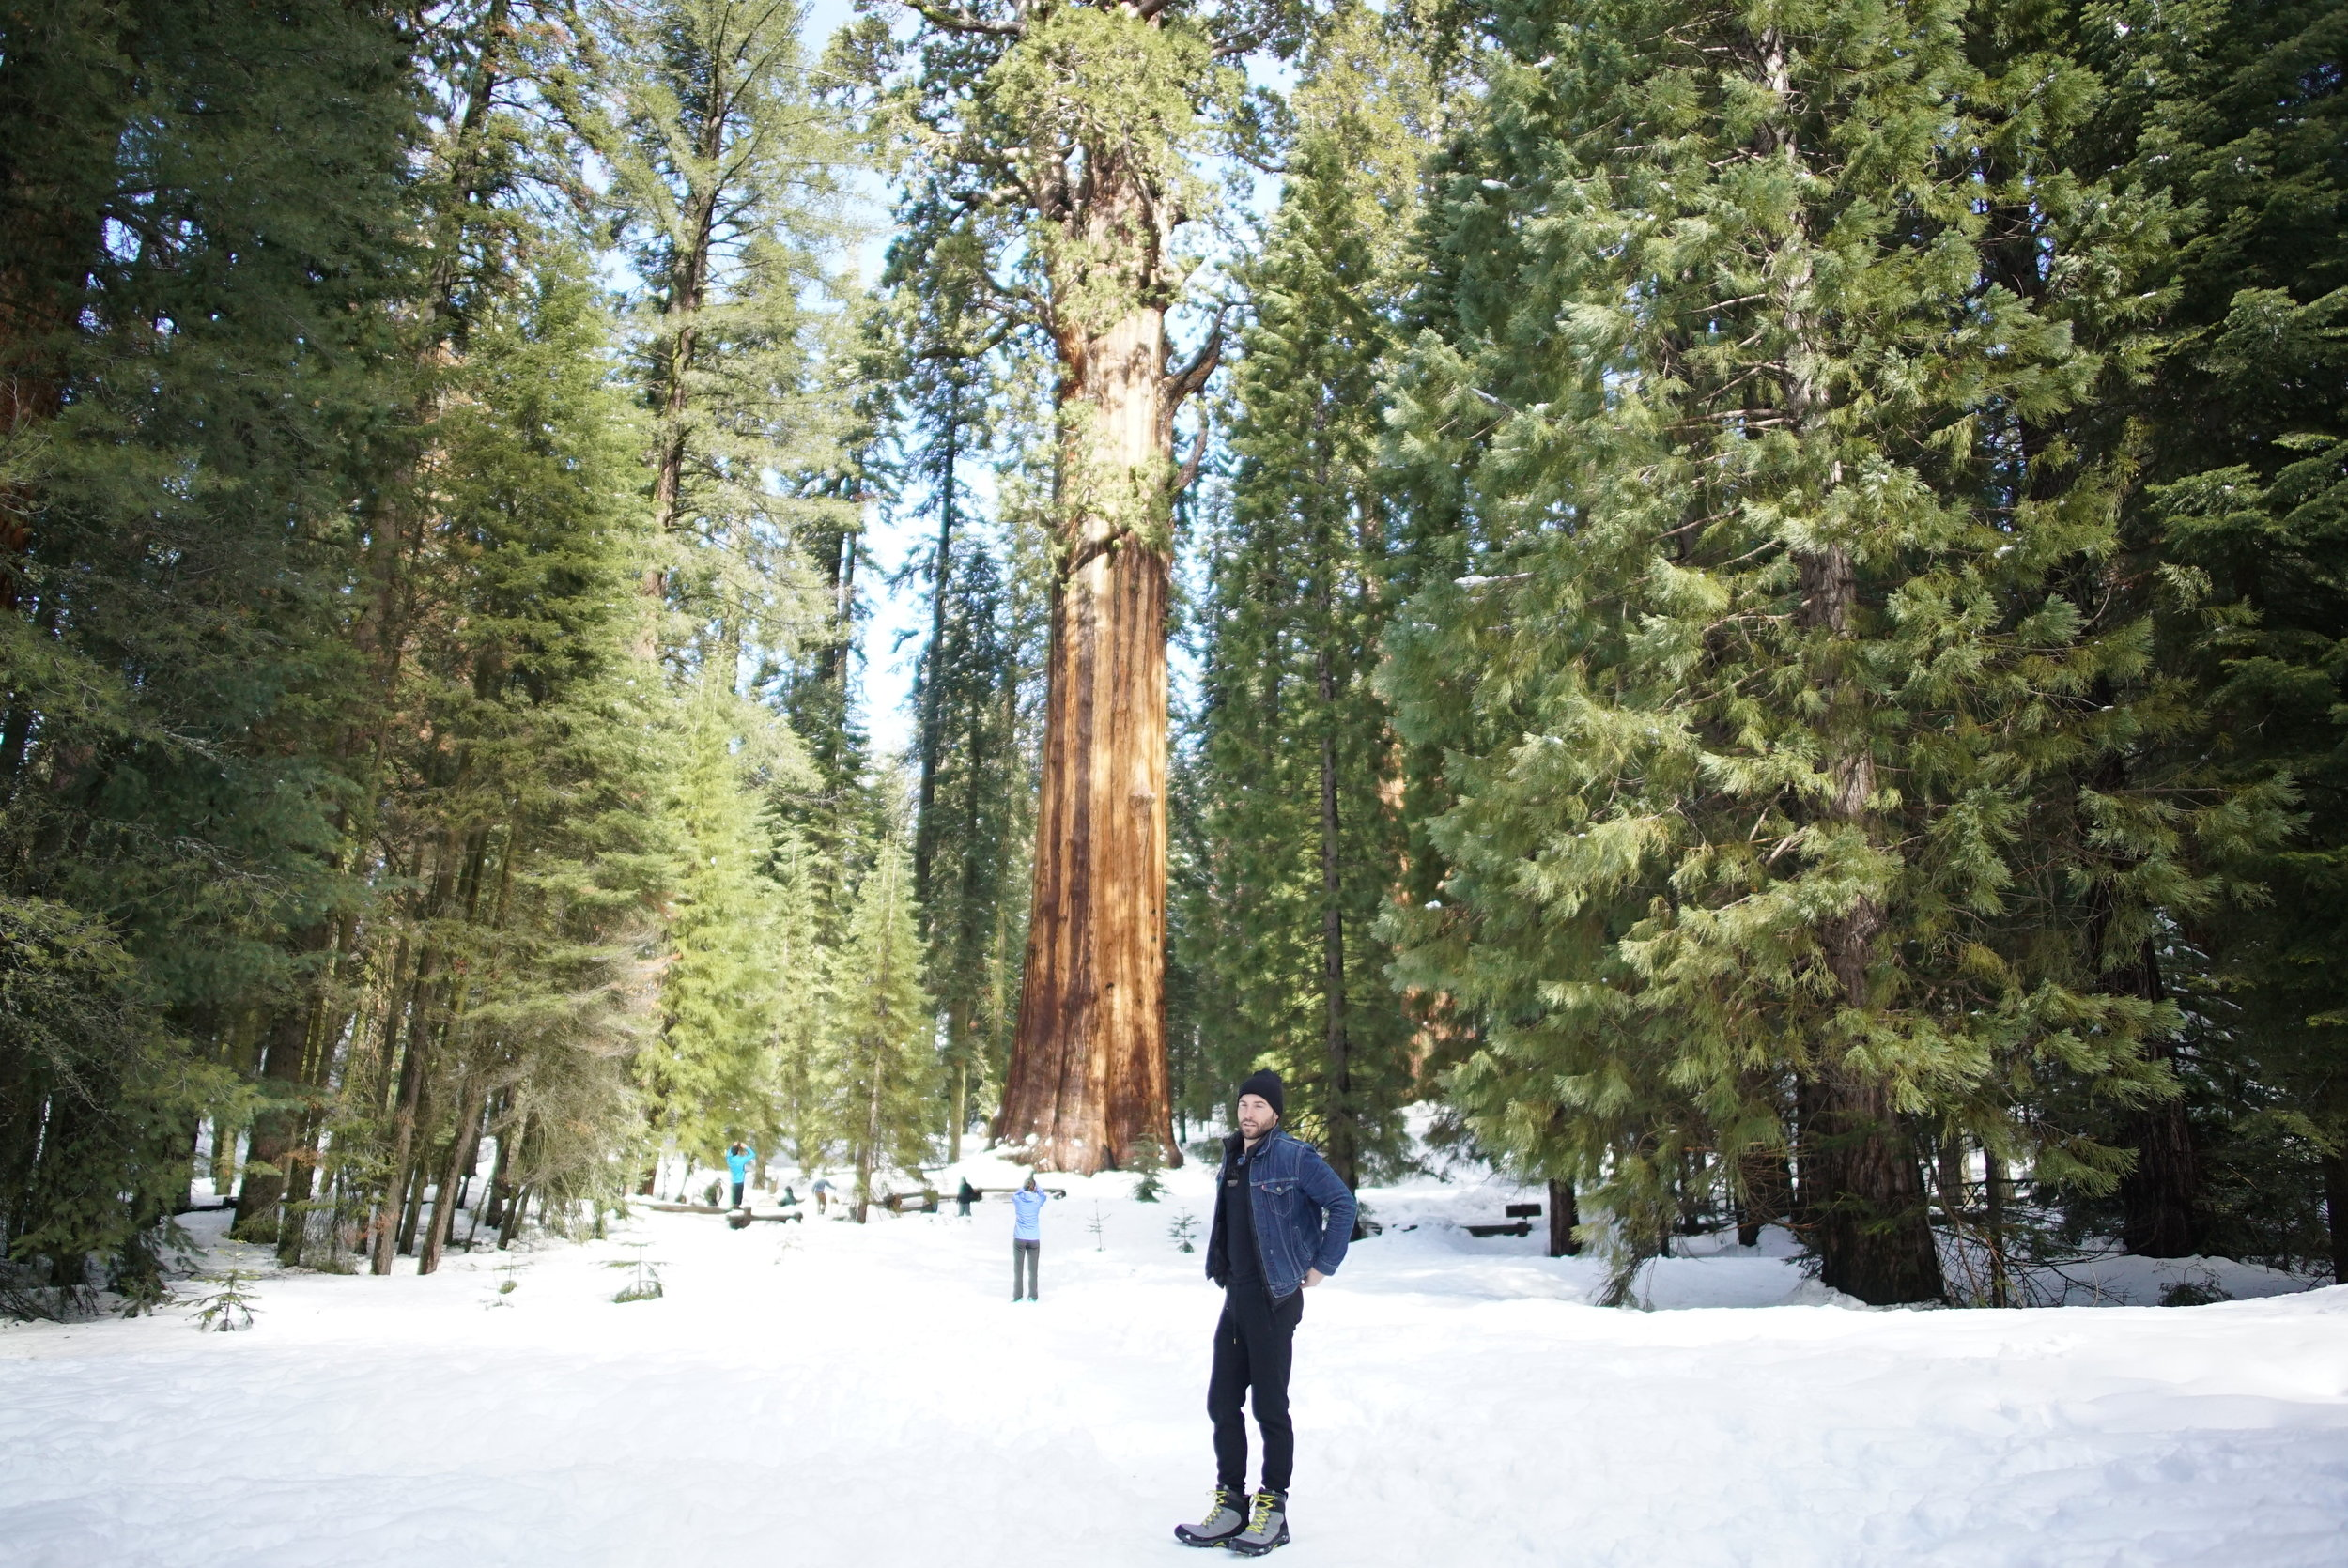 Revisiting Sequoia in early 2017.